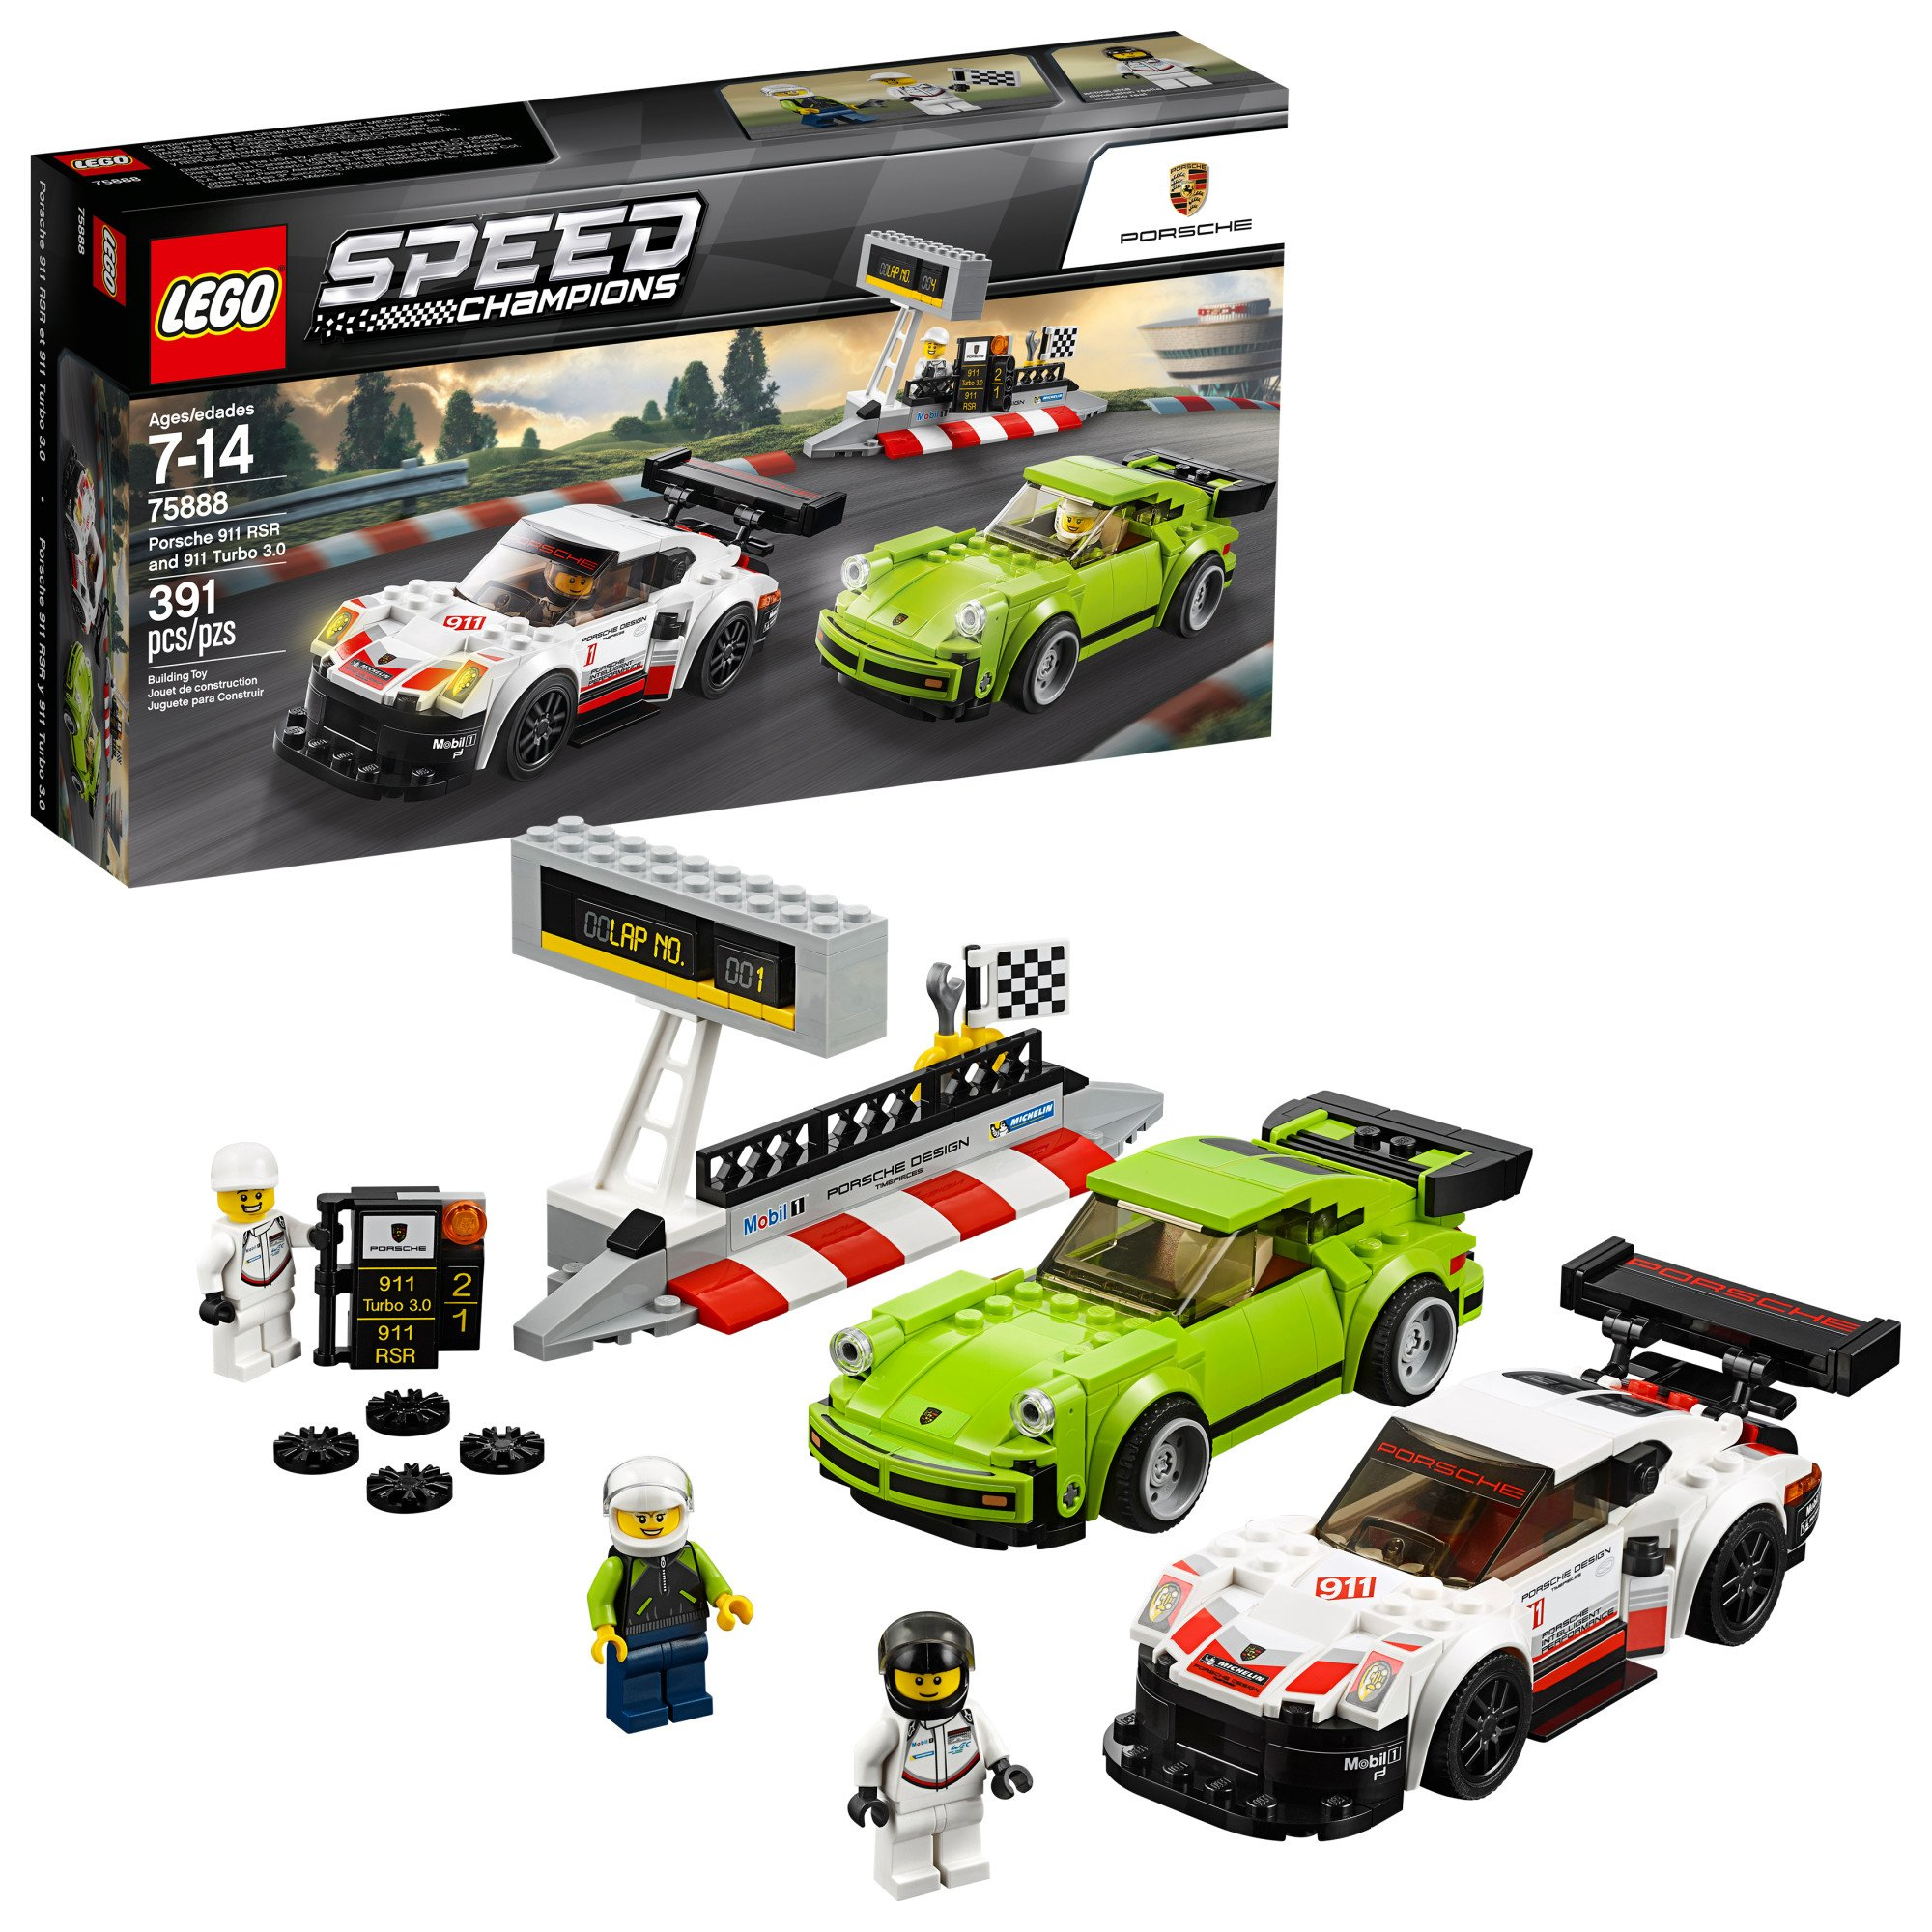 LEGO Speed Champions Porsche 911 RSR and 911 Turbo 3.0 75888 Building Kit (391 Piece) by LEGO (Image #1)